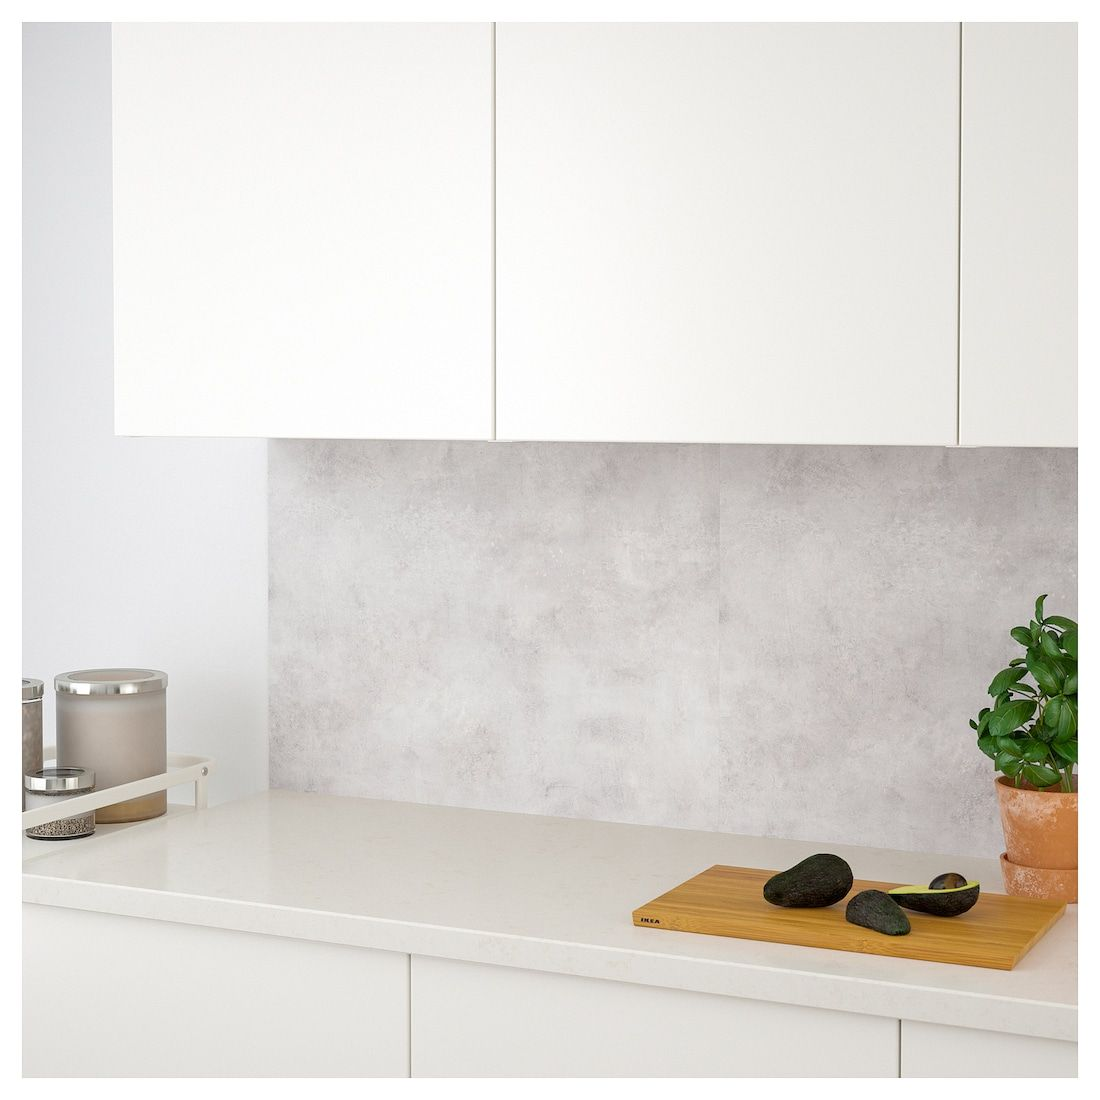 Lysekil Wall Panel Double Sided White Light Gray Concrete Effect 48x19 122x48 Cm Ikea In 2021 White Paneling Wall Paneling Lysekil